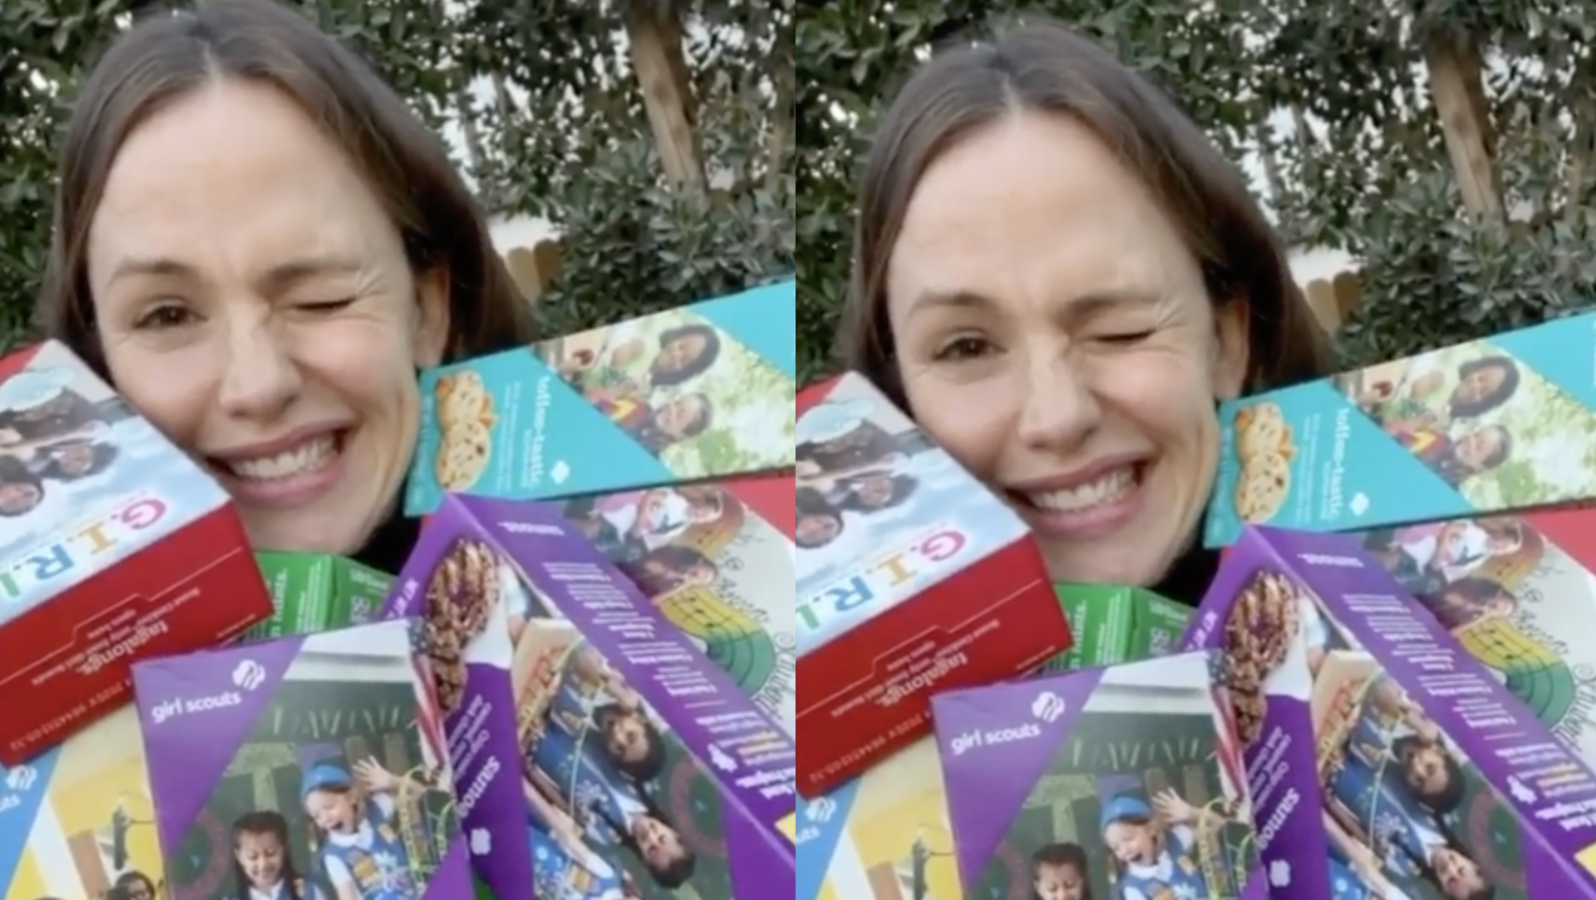 Jennifer Garner Said She'll Ship Girl Scout Cookies To You If You Email Her